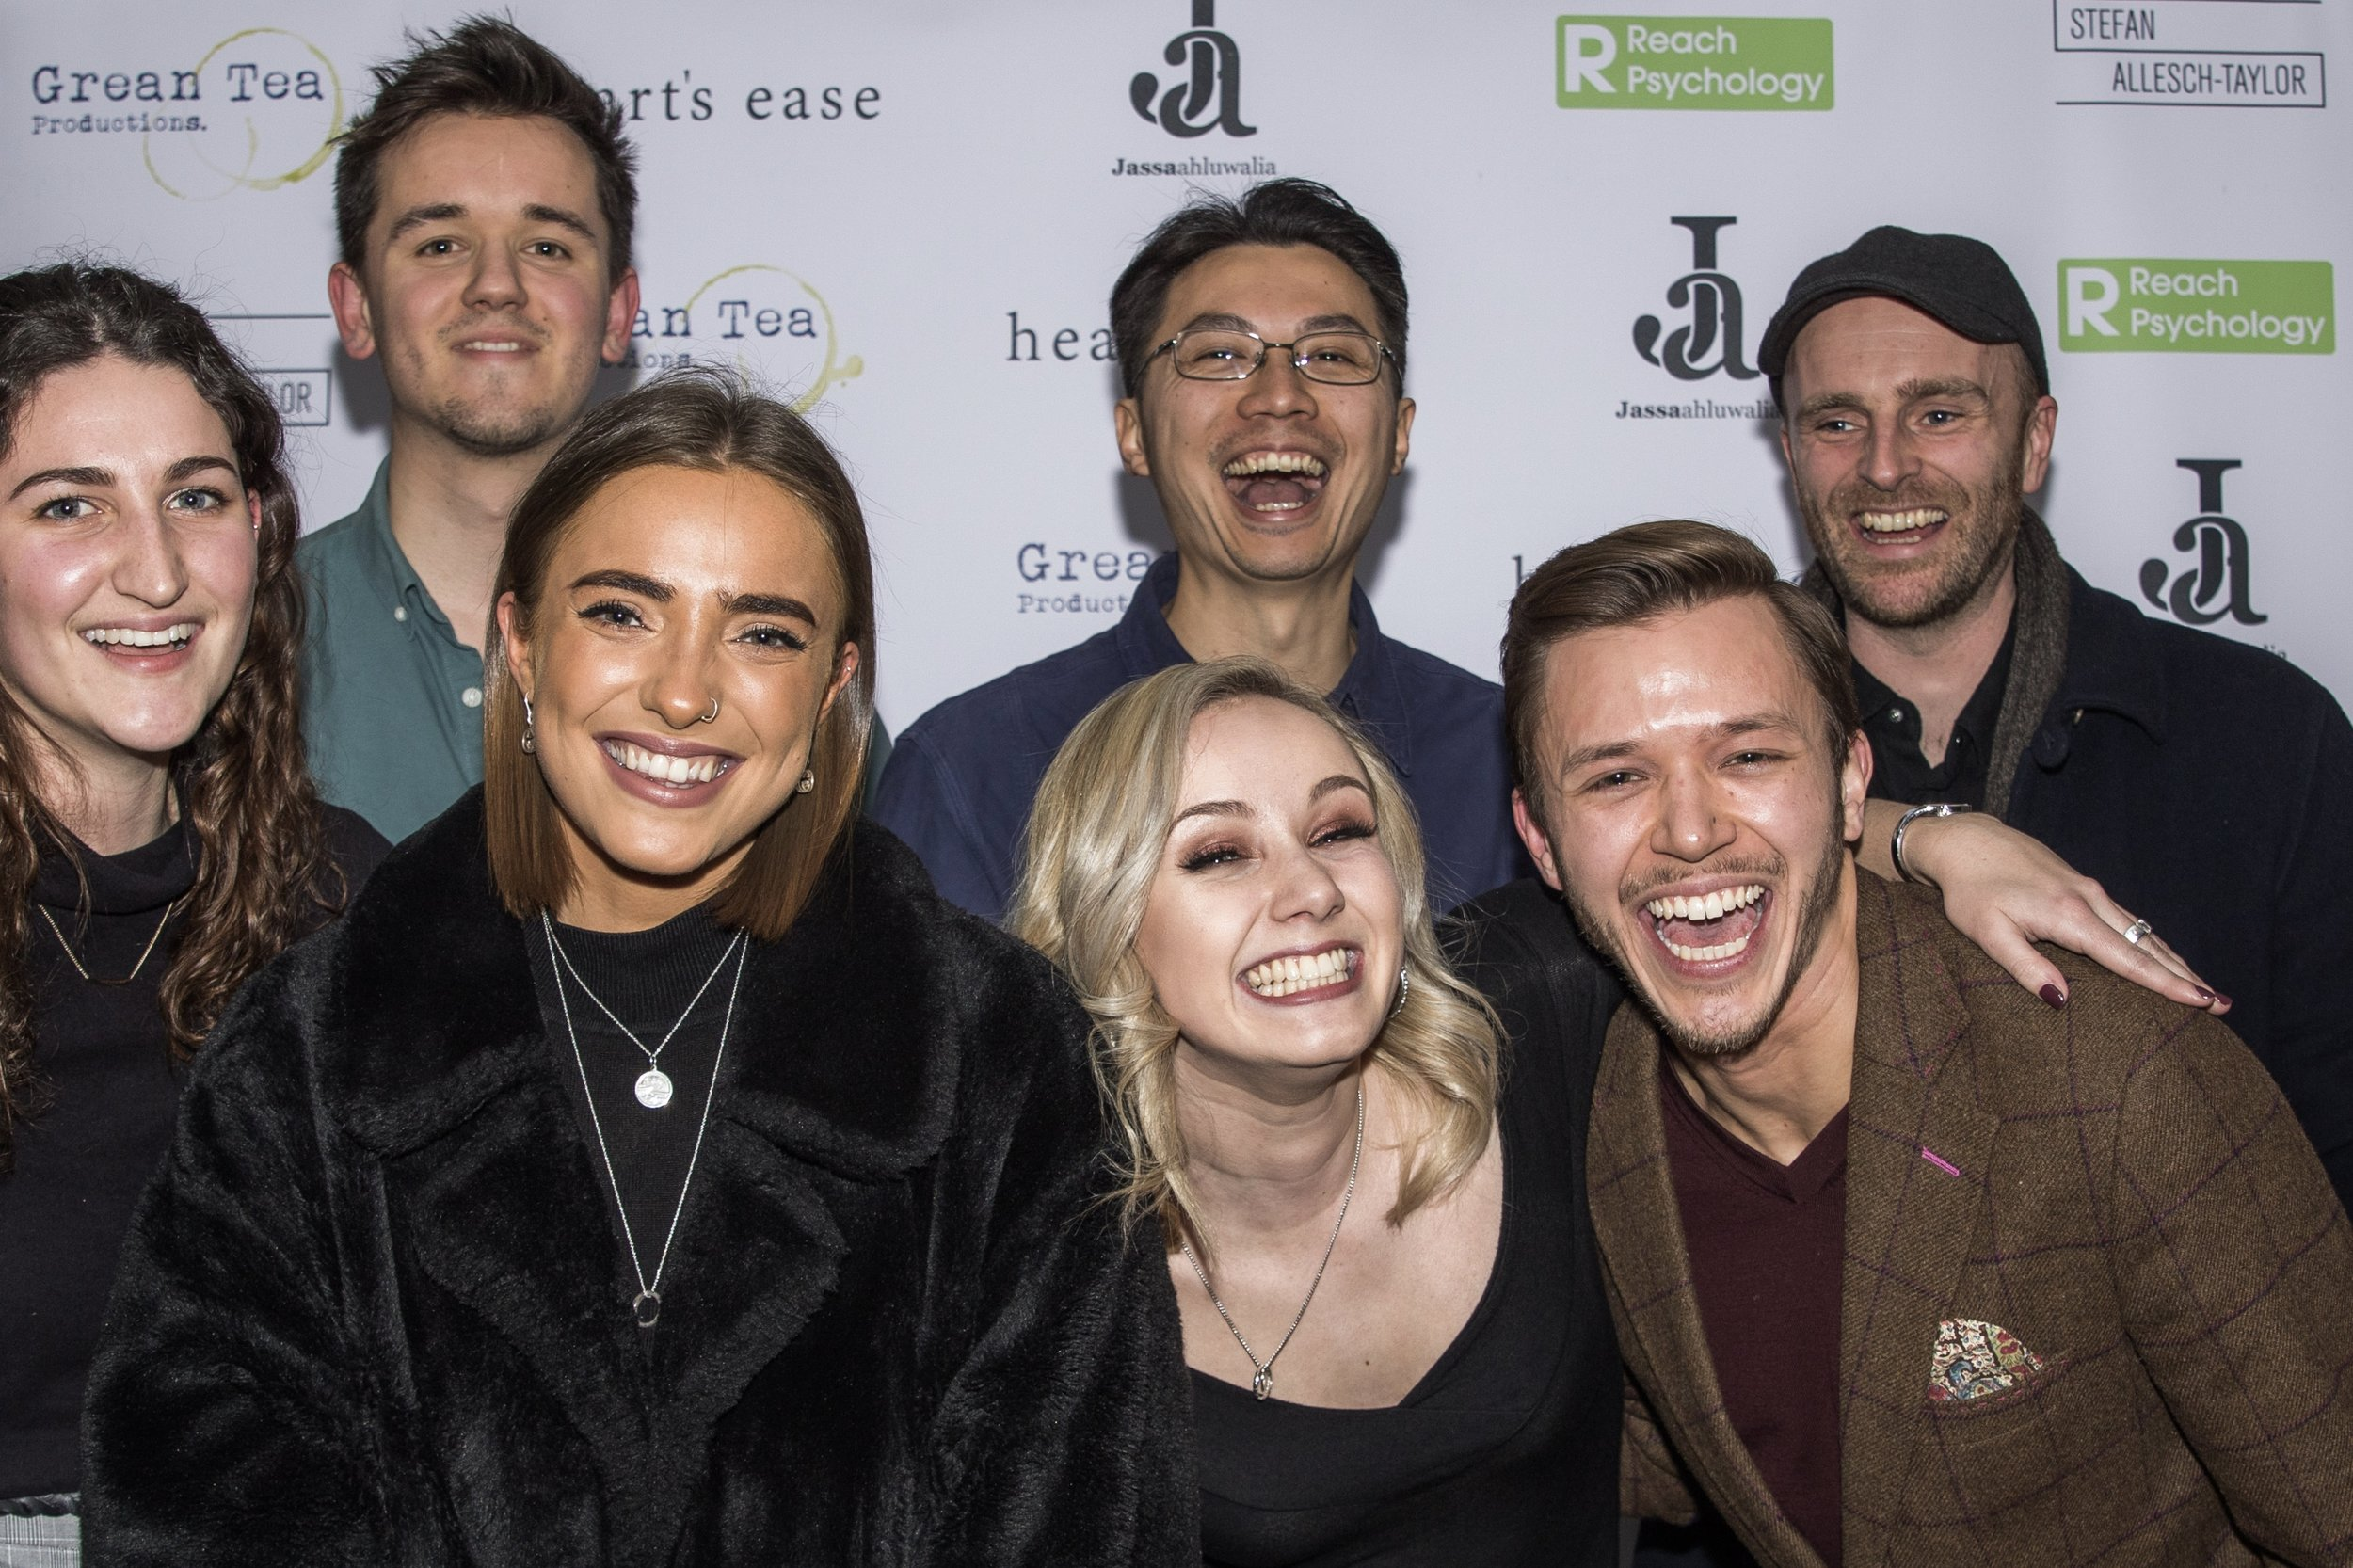 Olly Fawcett, Christopher CF Chow, Matthew J Smith (back), Nina Harding, Cecily Mitchell, Annie Botta and Jassa Ahluwalia attend the cast and crew screening of Heart's Ease.